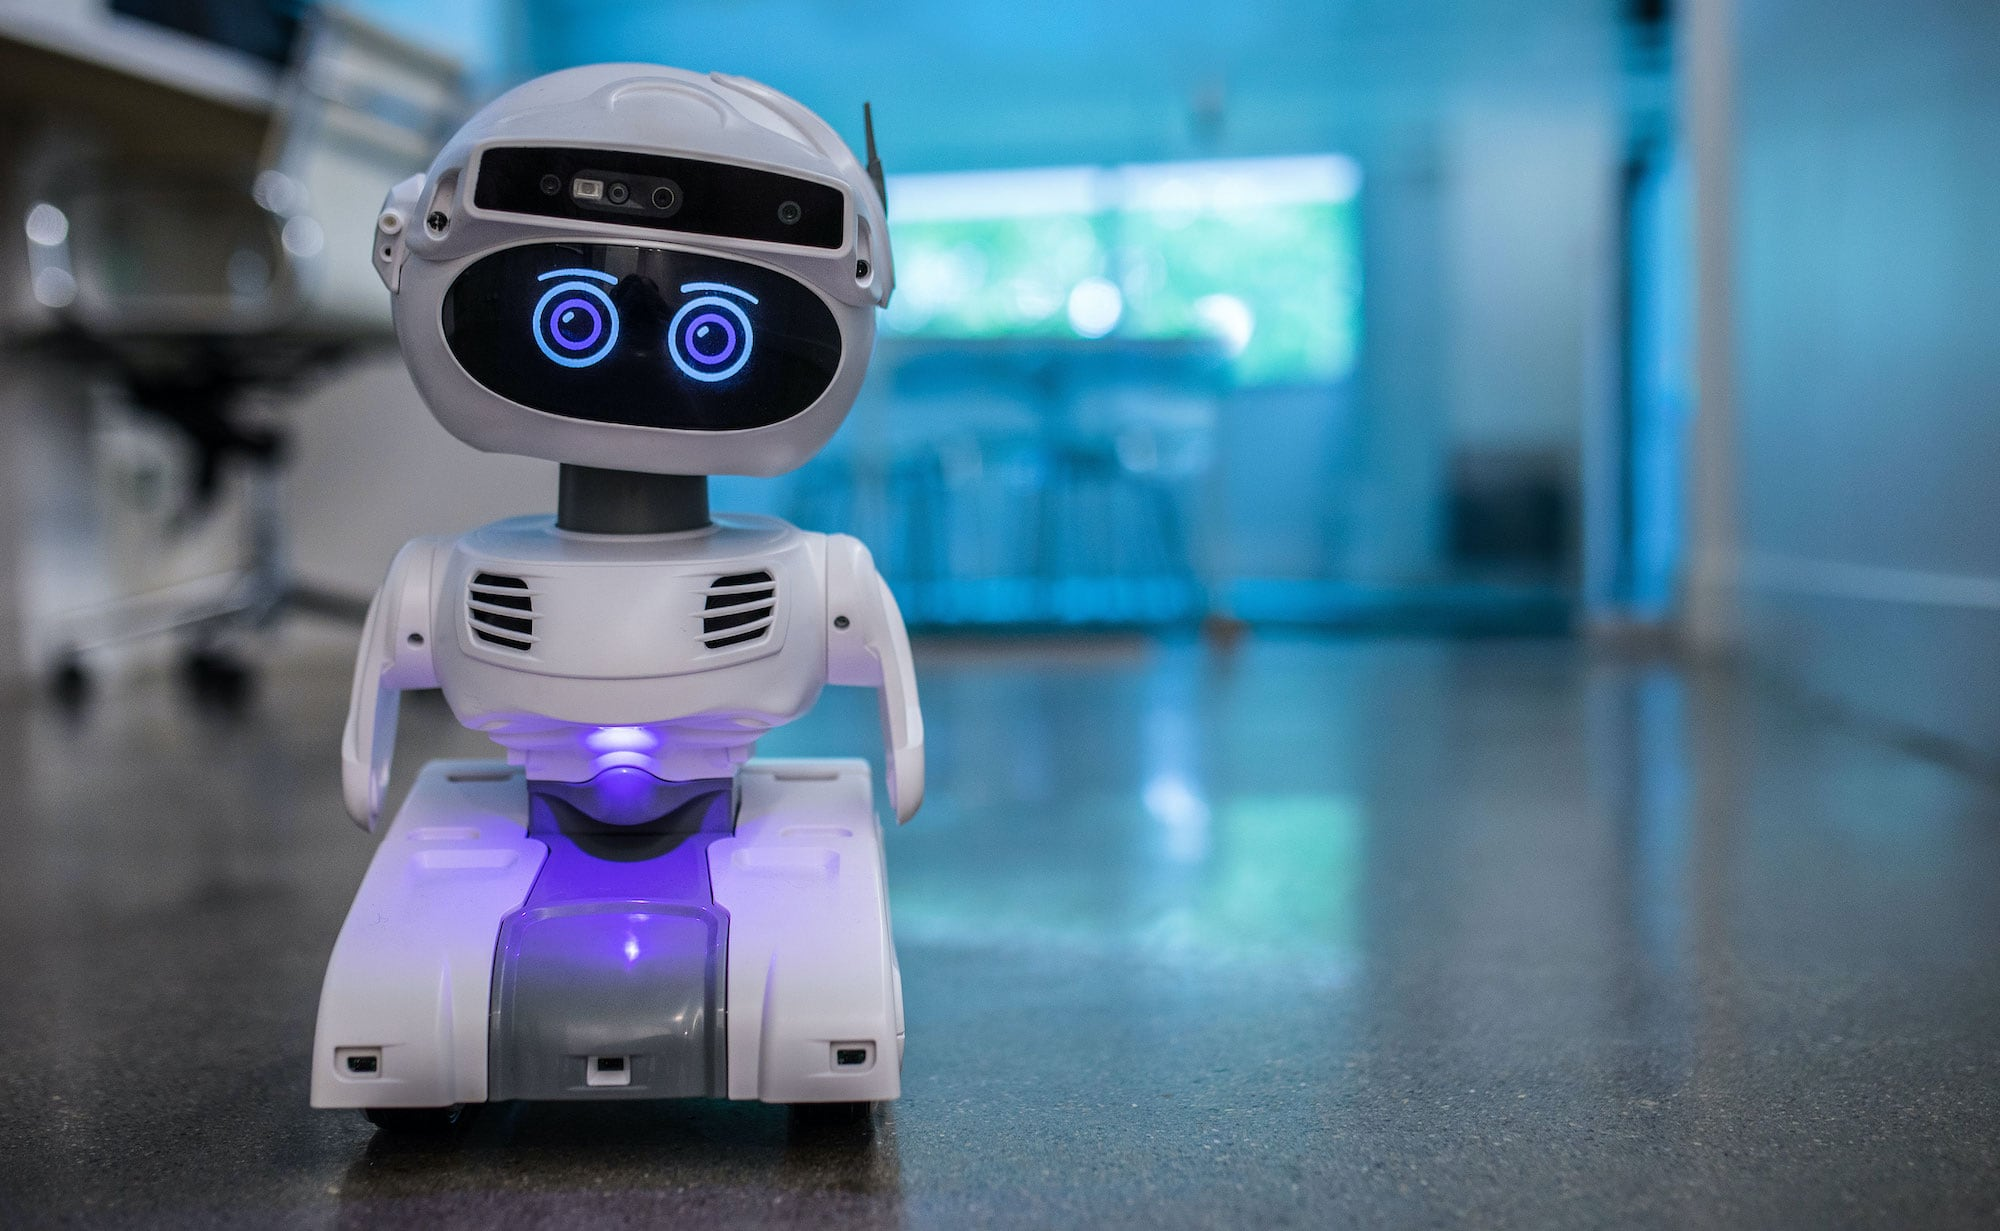 Misty II Personal Robot Platform expresses emotion through head and body movements